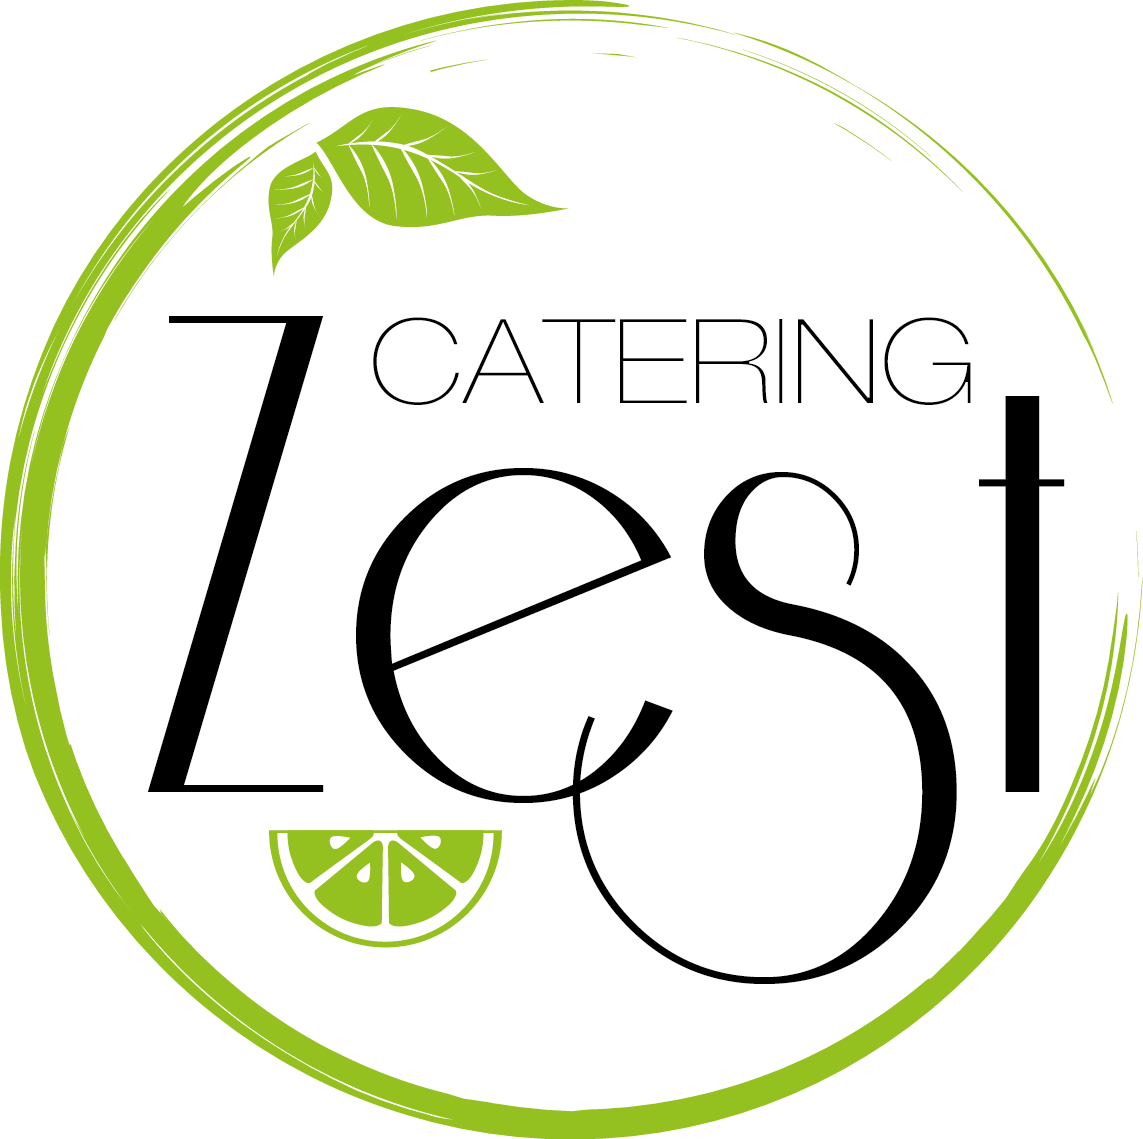 Catering with Zest